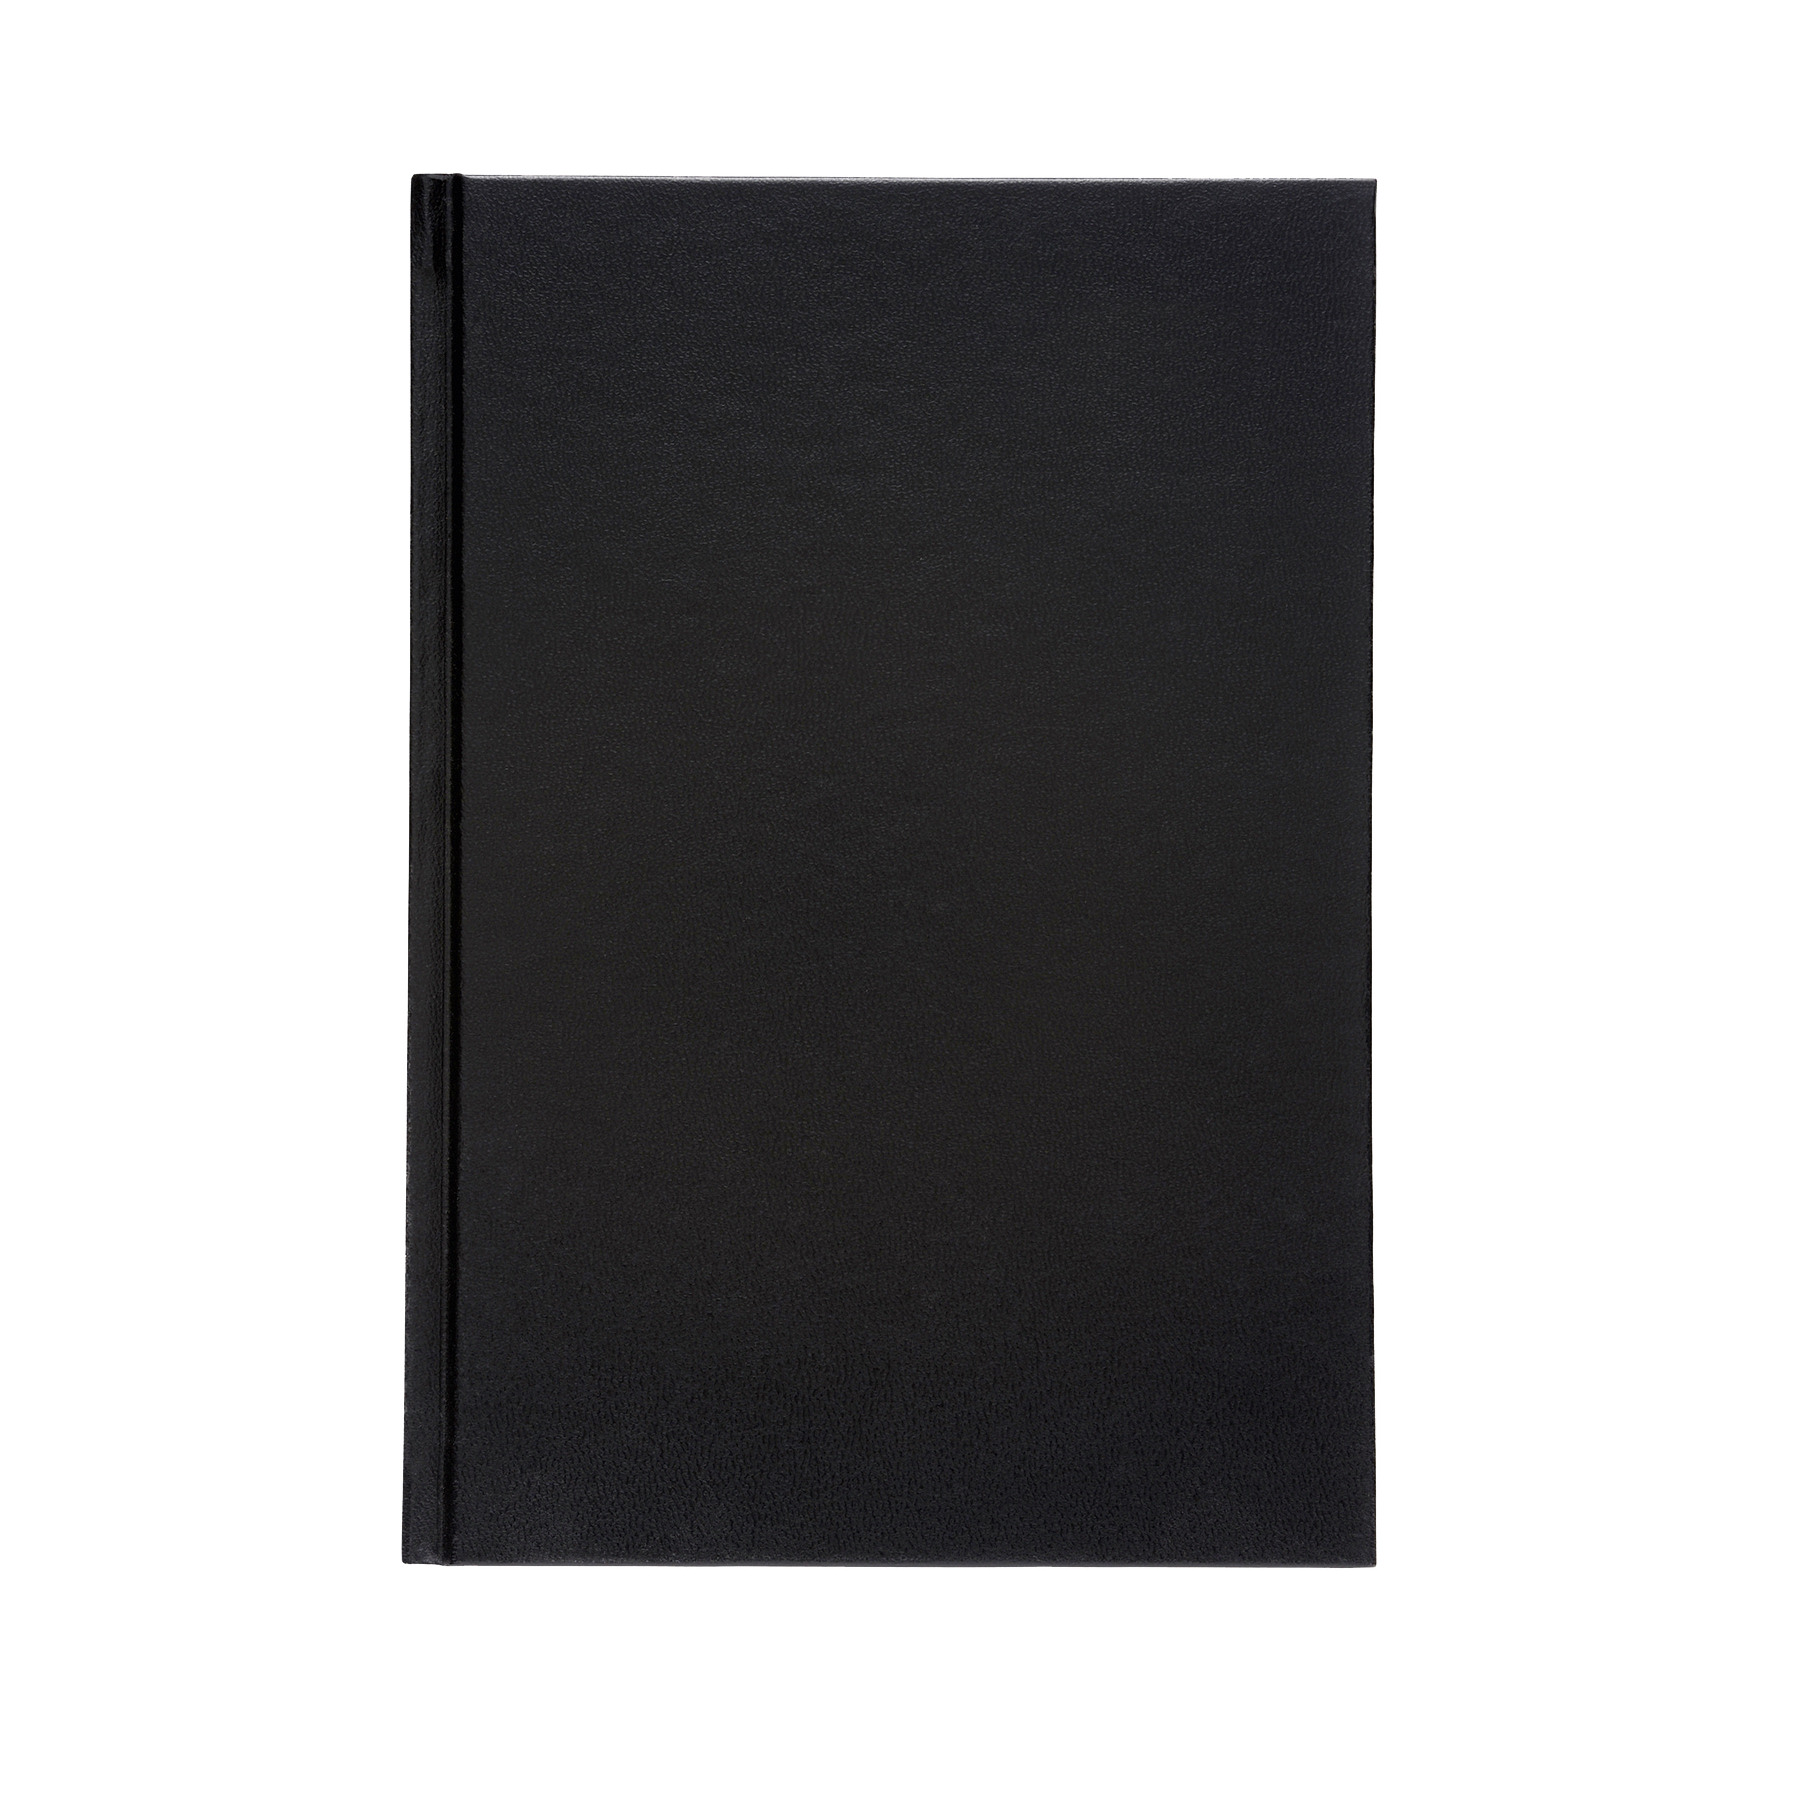 5 Star 2016-2017 Academic Year Diary A4 Day to a Page Black